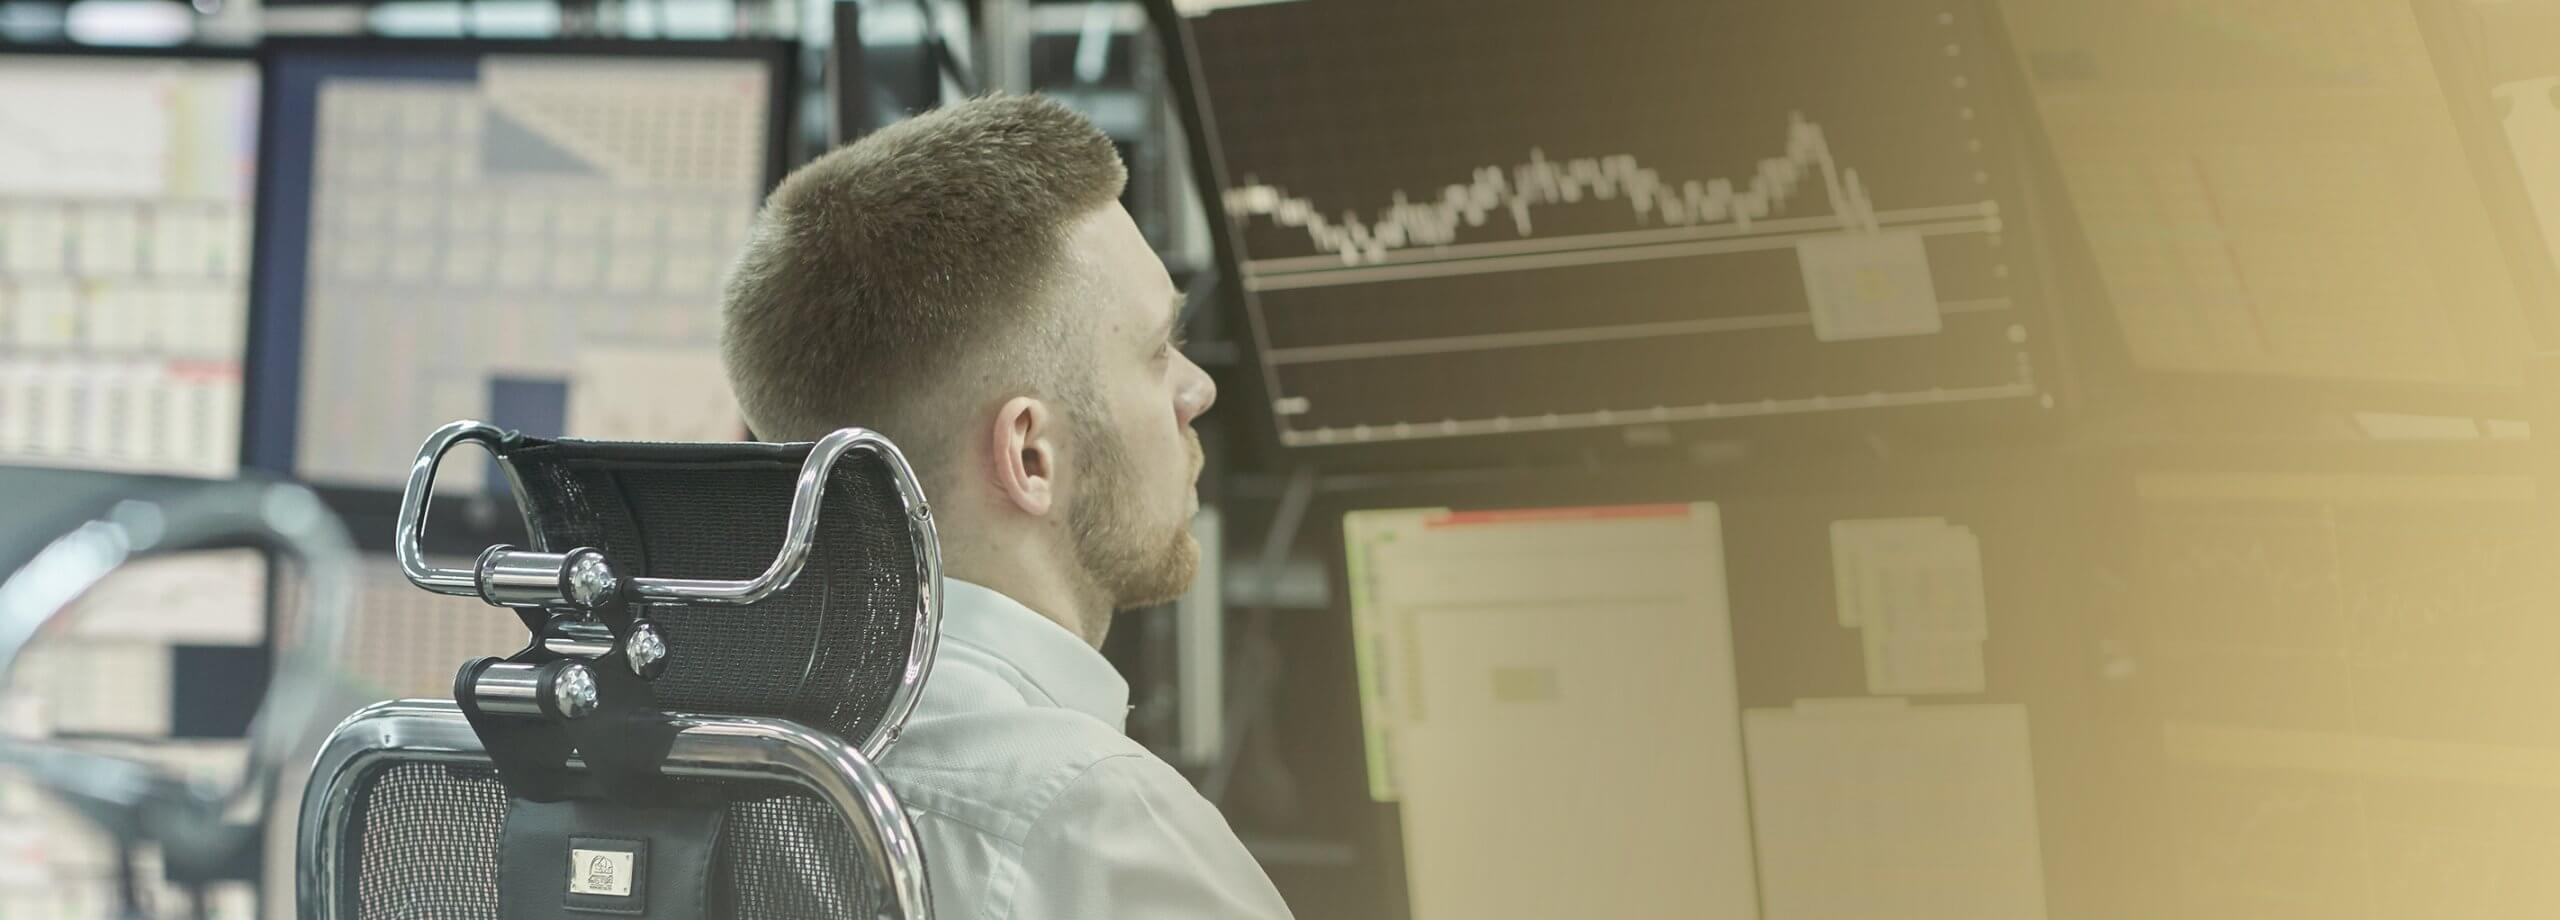 Professional Trader sitting at desk